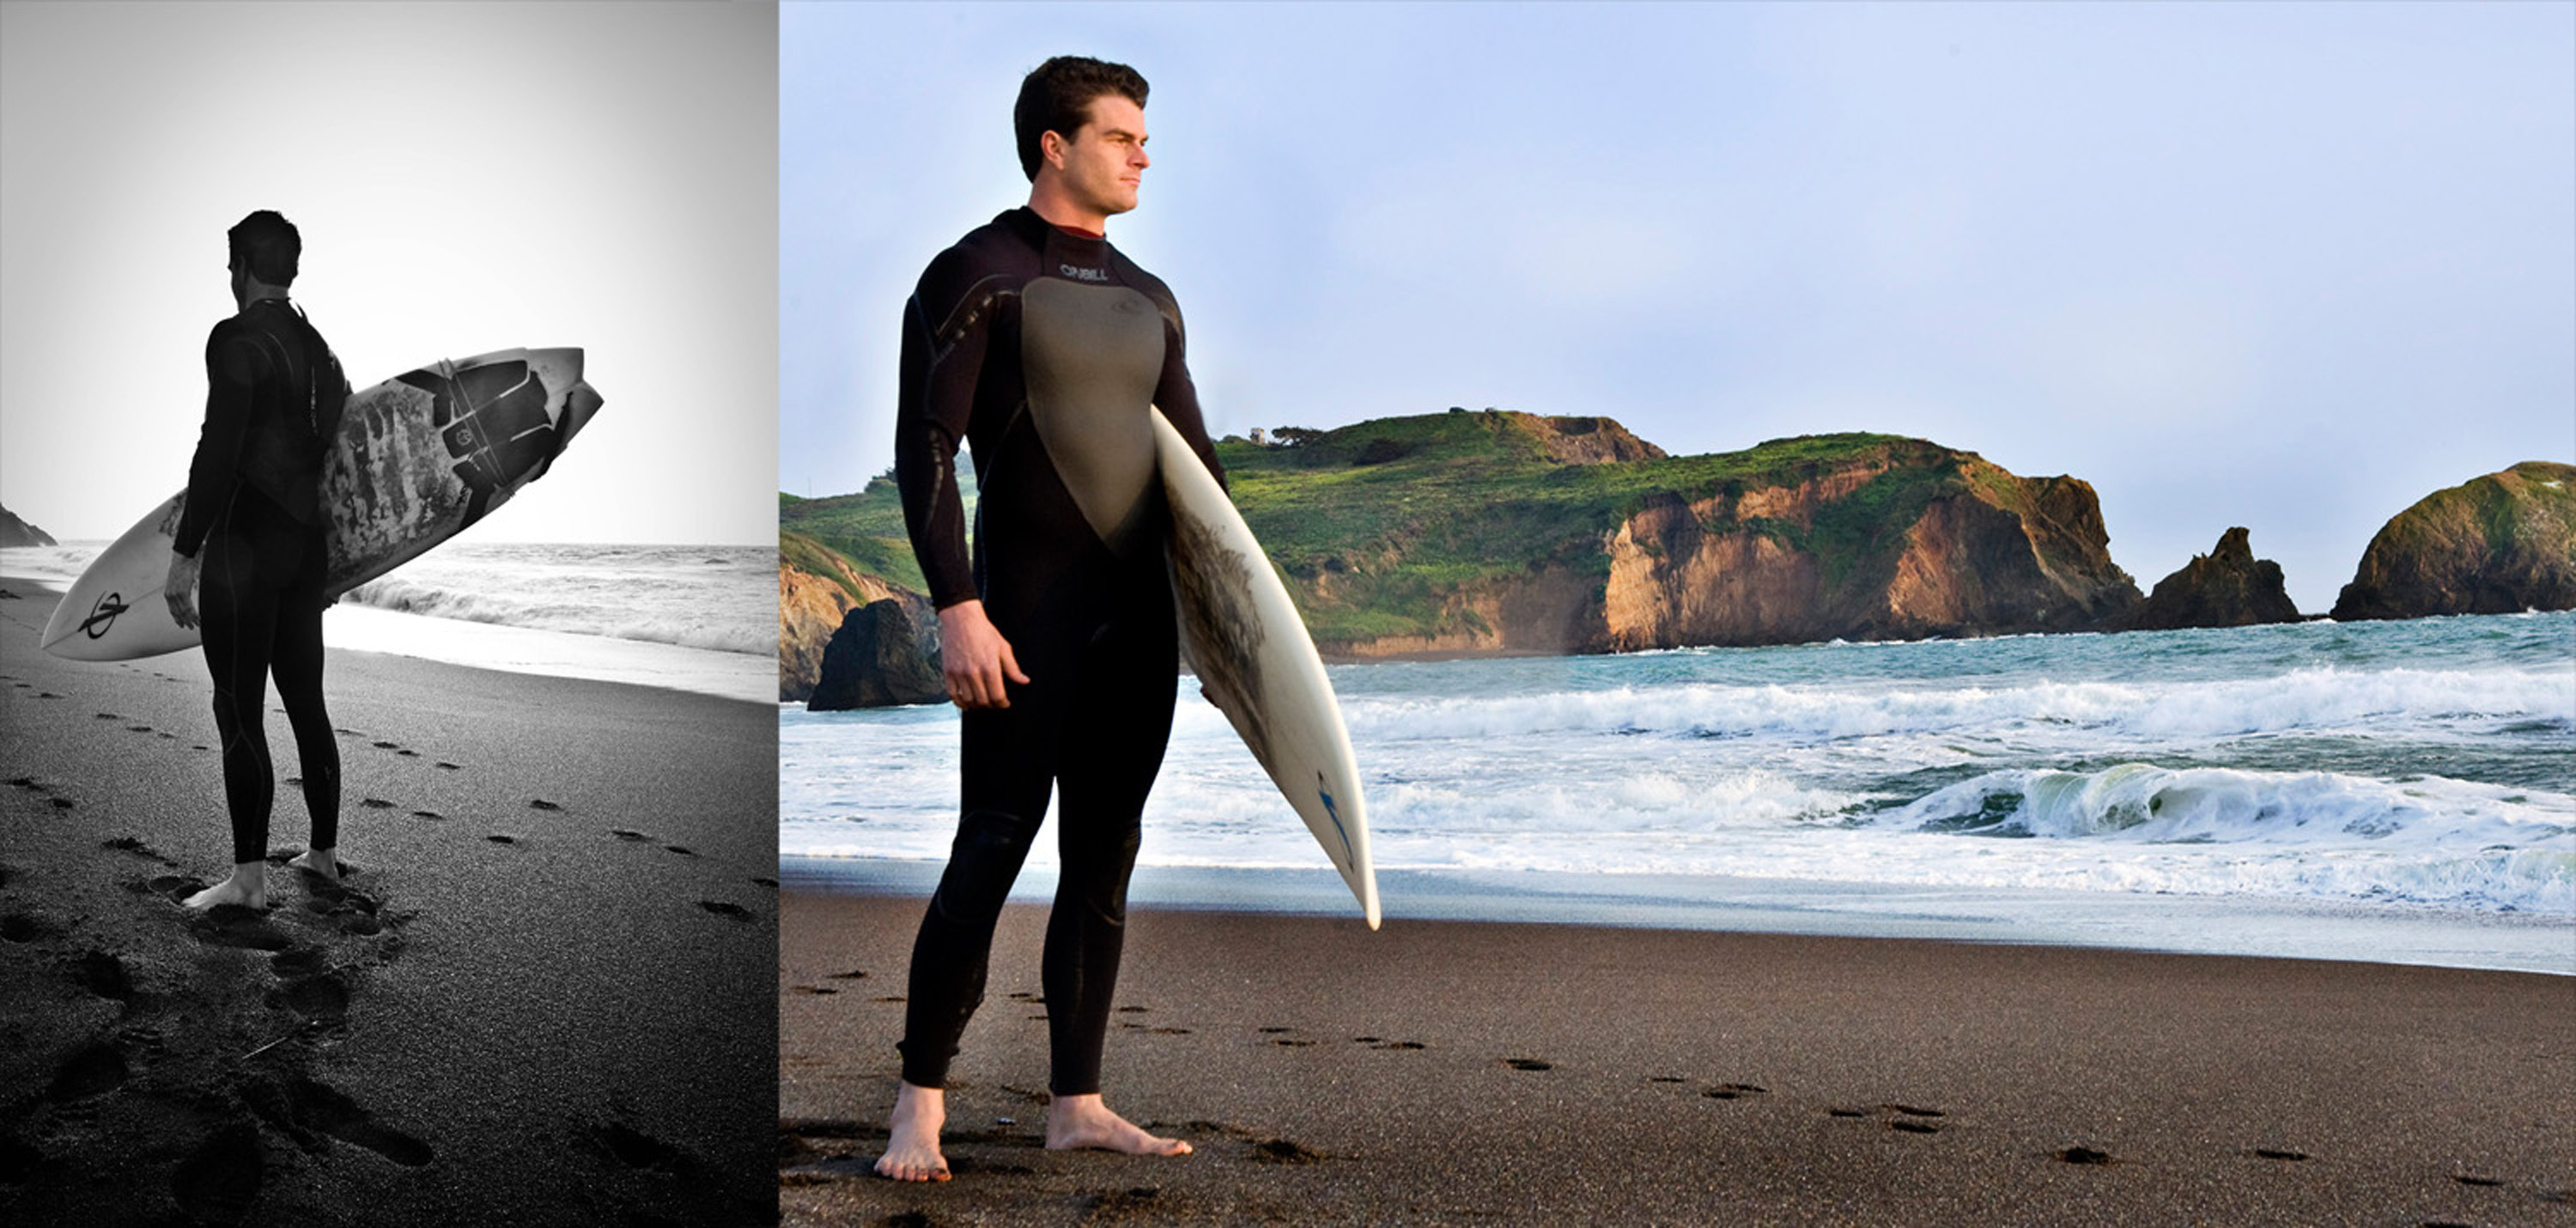 SURFING SURF EDITORIAL  COMMERCIAL ADVERTISING PHOTOGRAPHY - VERDICT DIGITAL LOS ANGELES SAN FRANCISCO OAKLAND